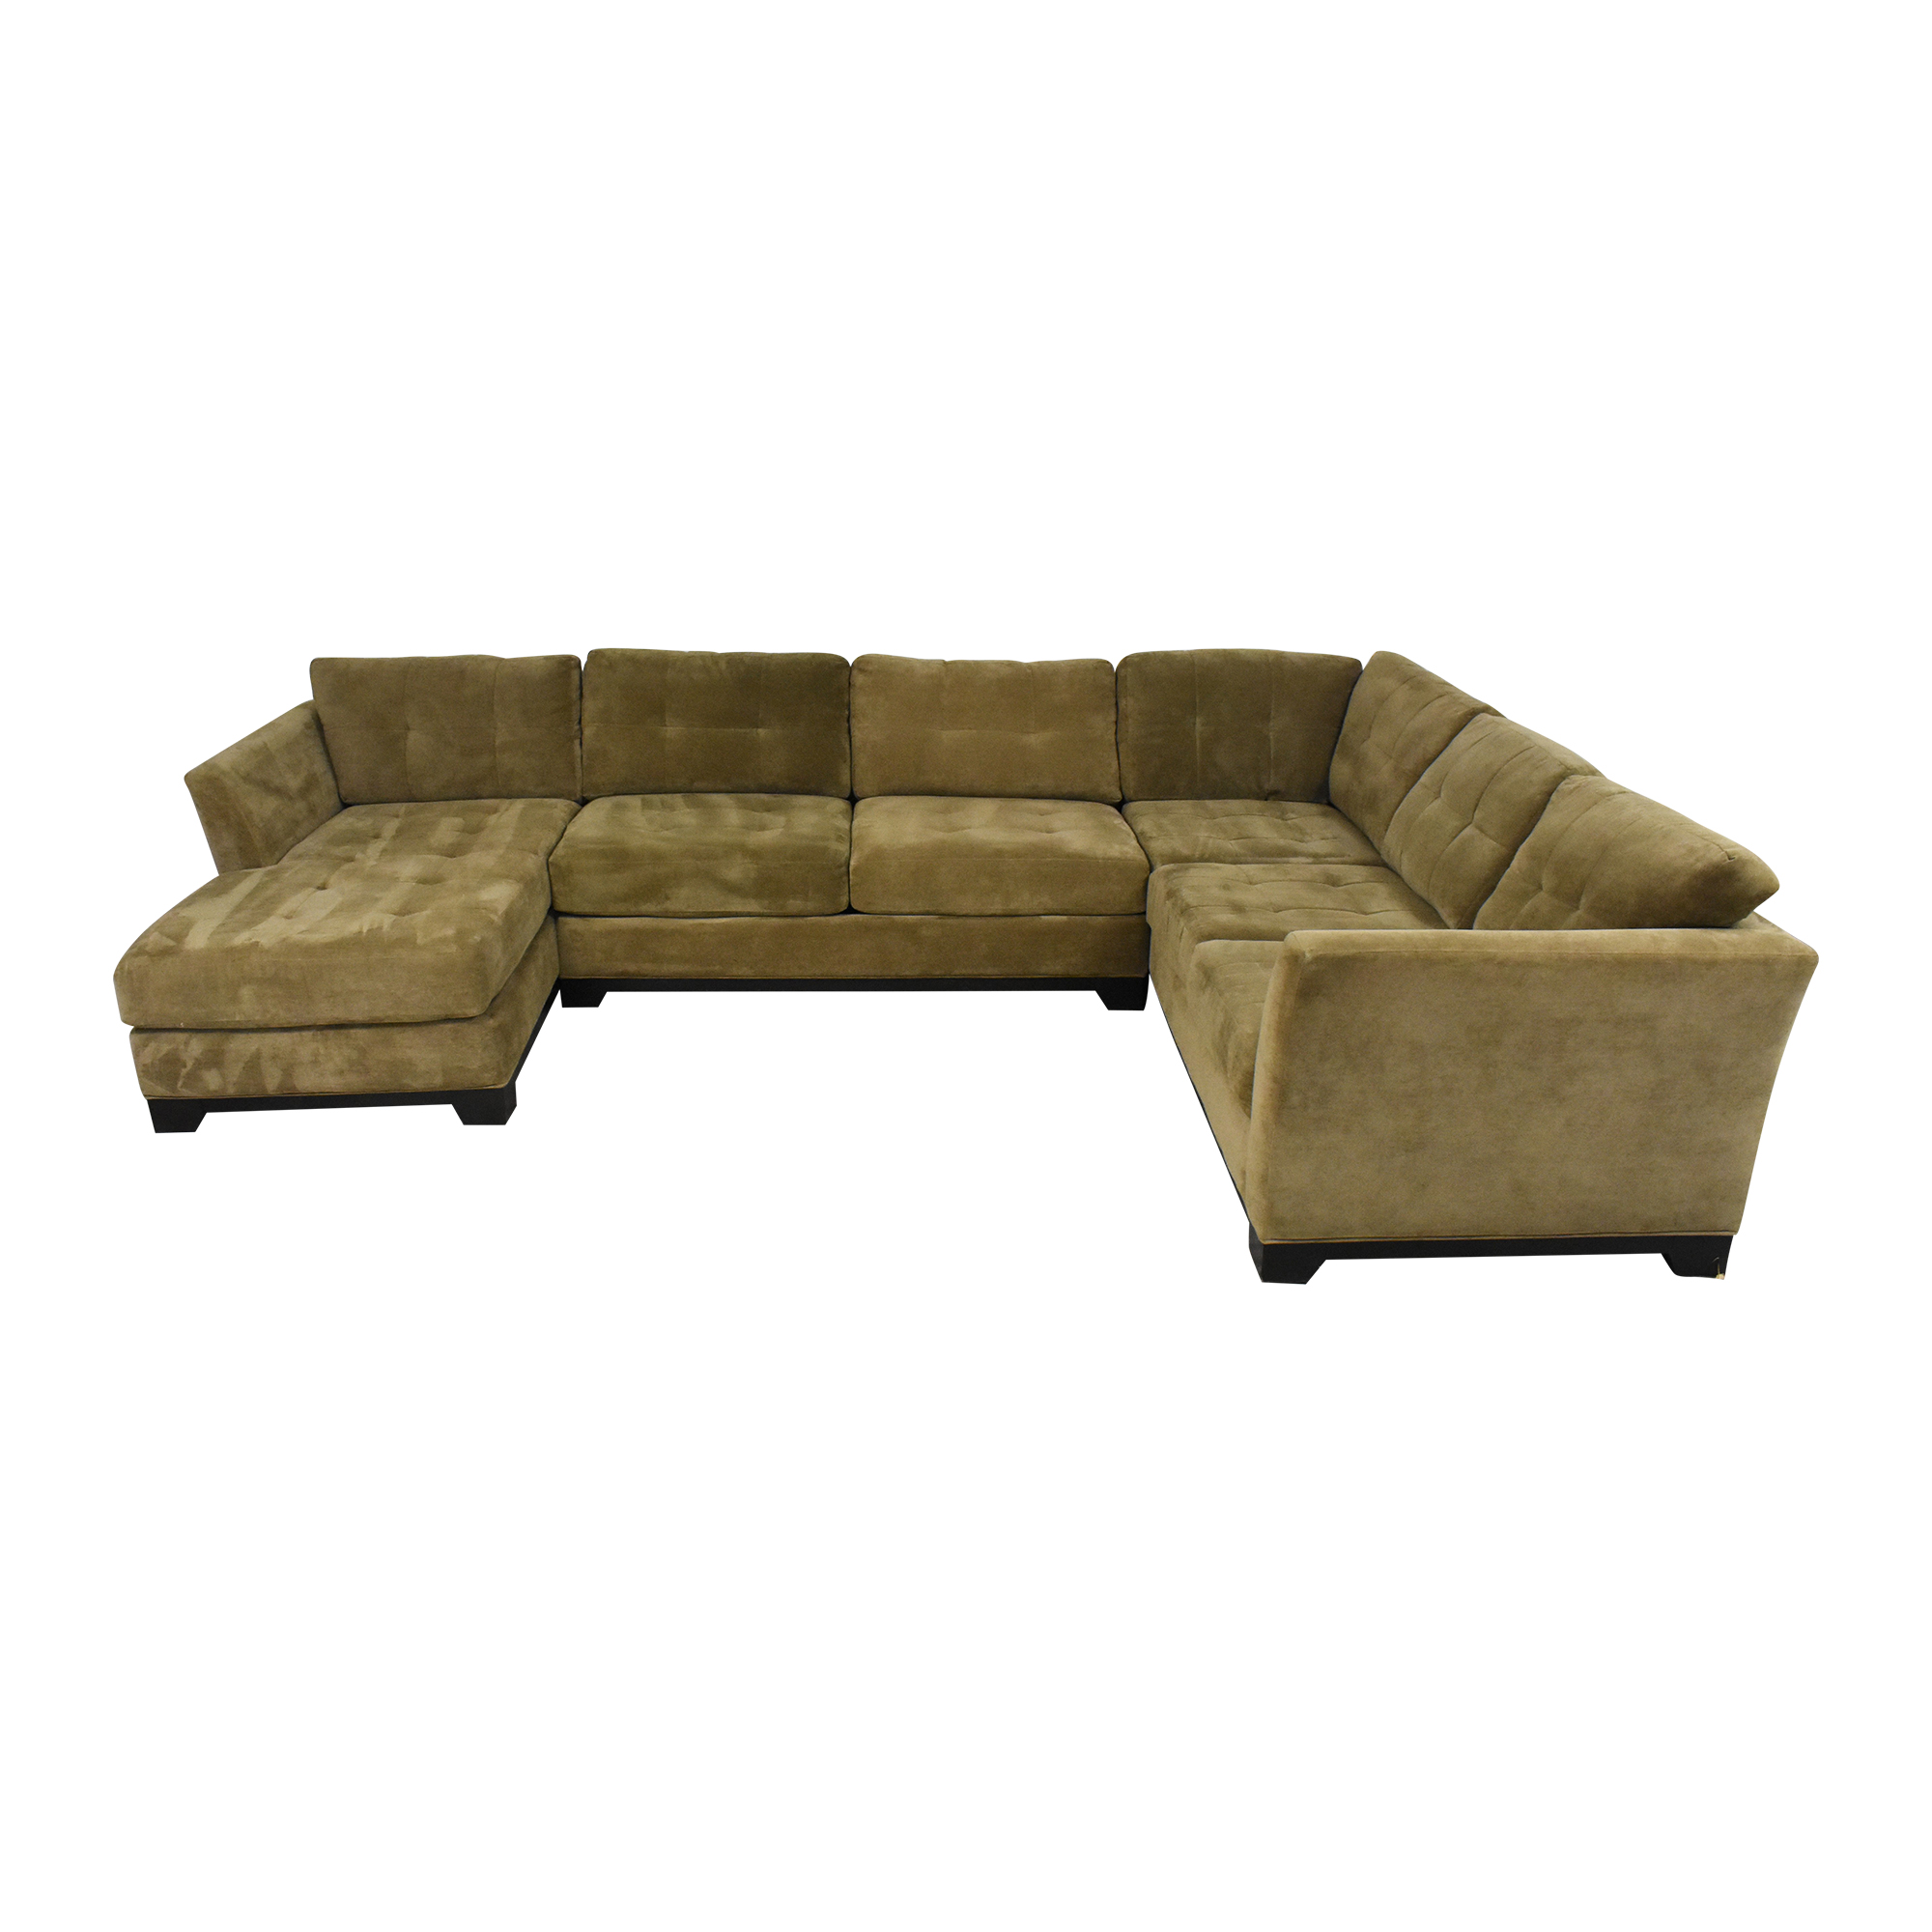 Macy's Elliot Three Piece Sectional Sofa / Sectionals